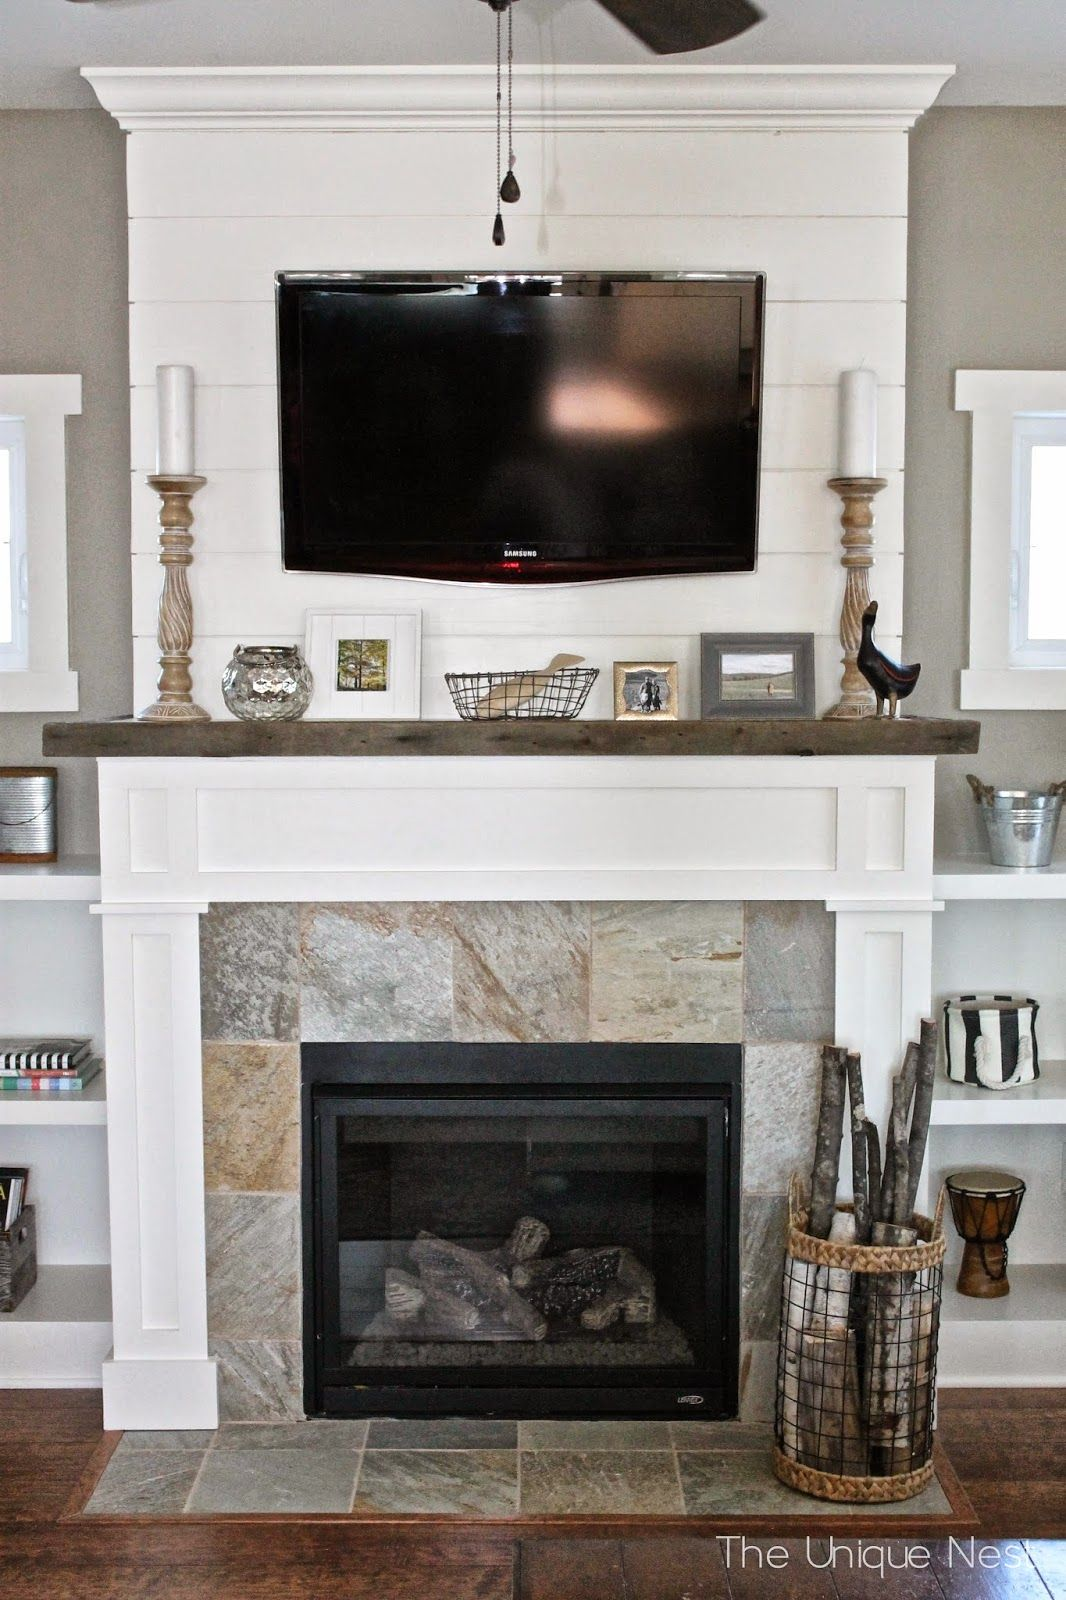 Awesome Fireplace Ideas With TV Above,fireplace Surround Design Ideas,fireplace  Remodeling Ideas,refacing Fireplace Ideas,fireplace Tile Home Depot, Fireplace Stone ...